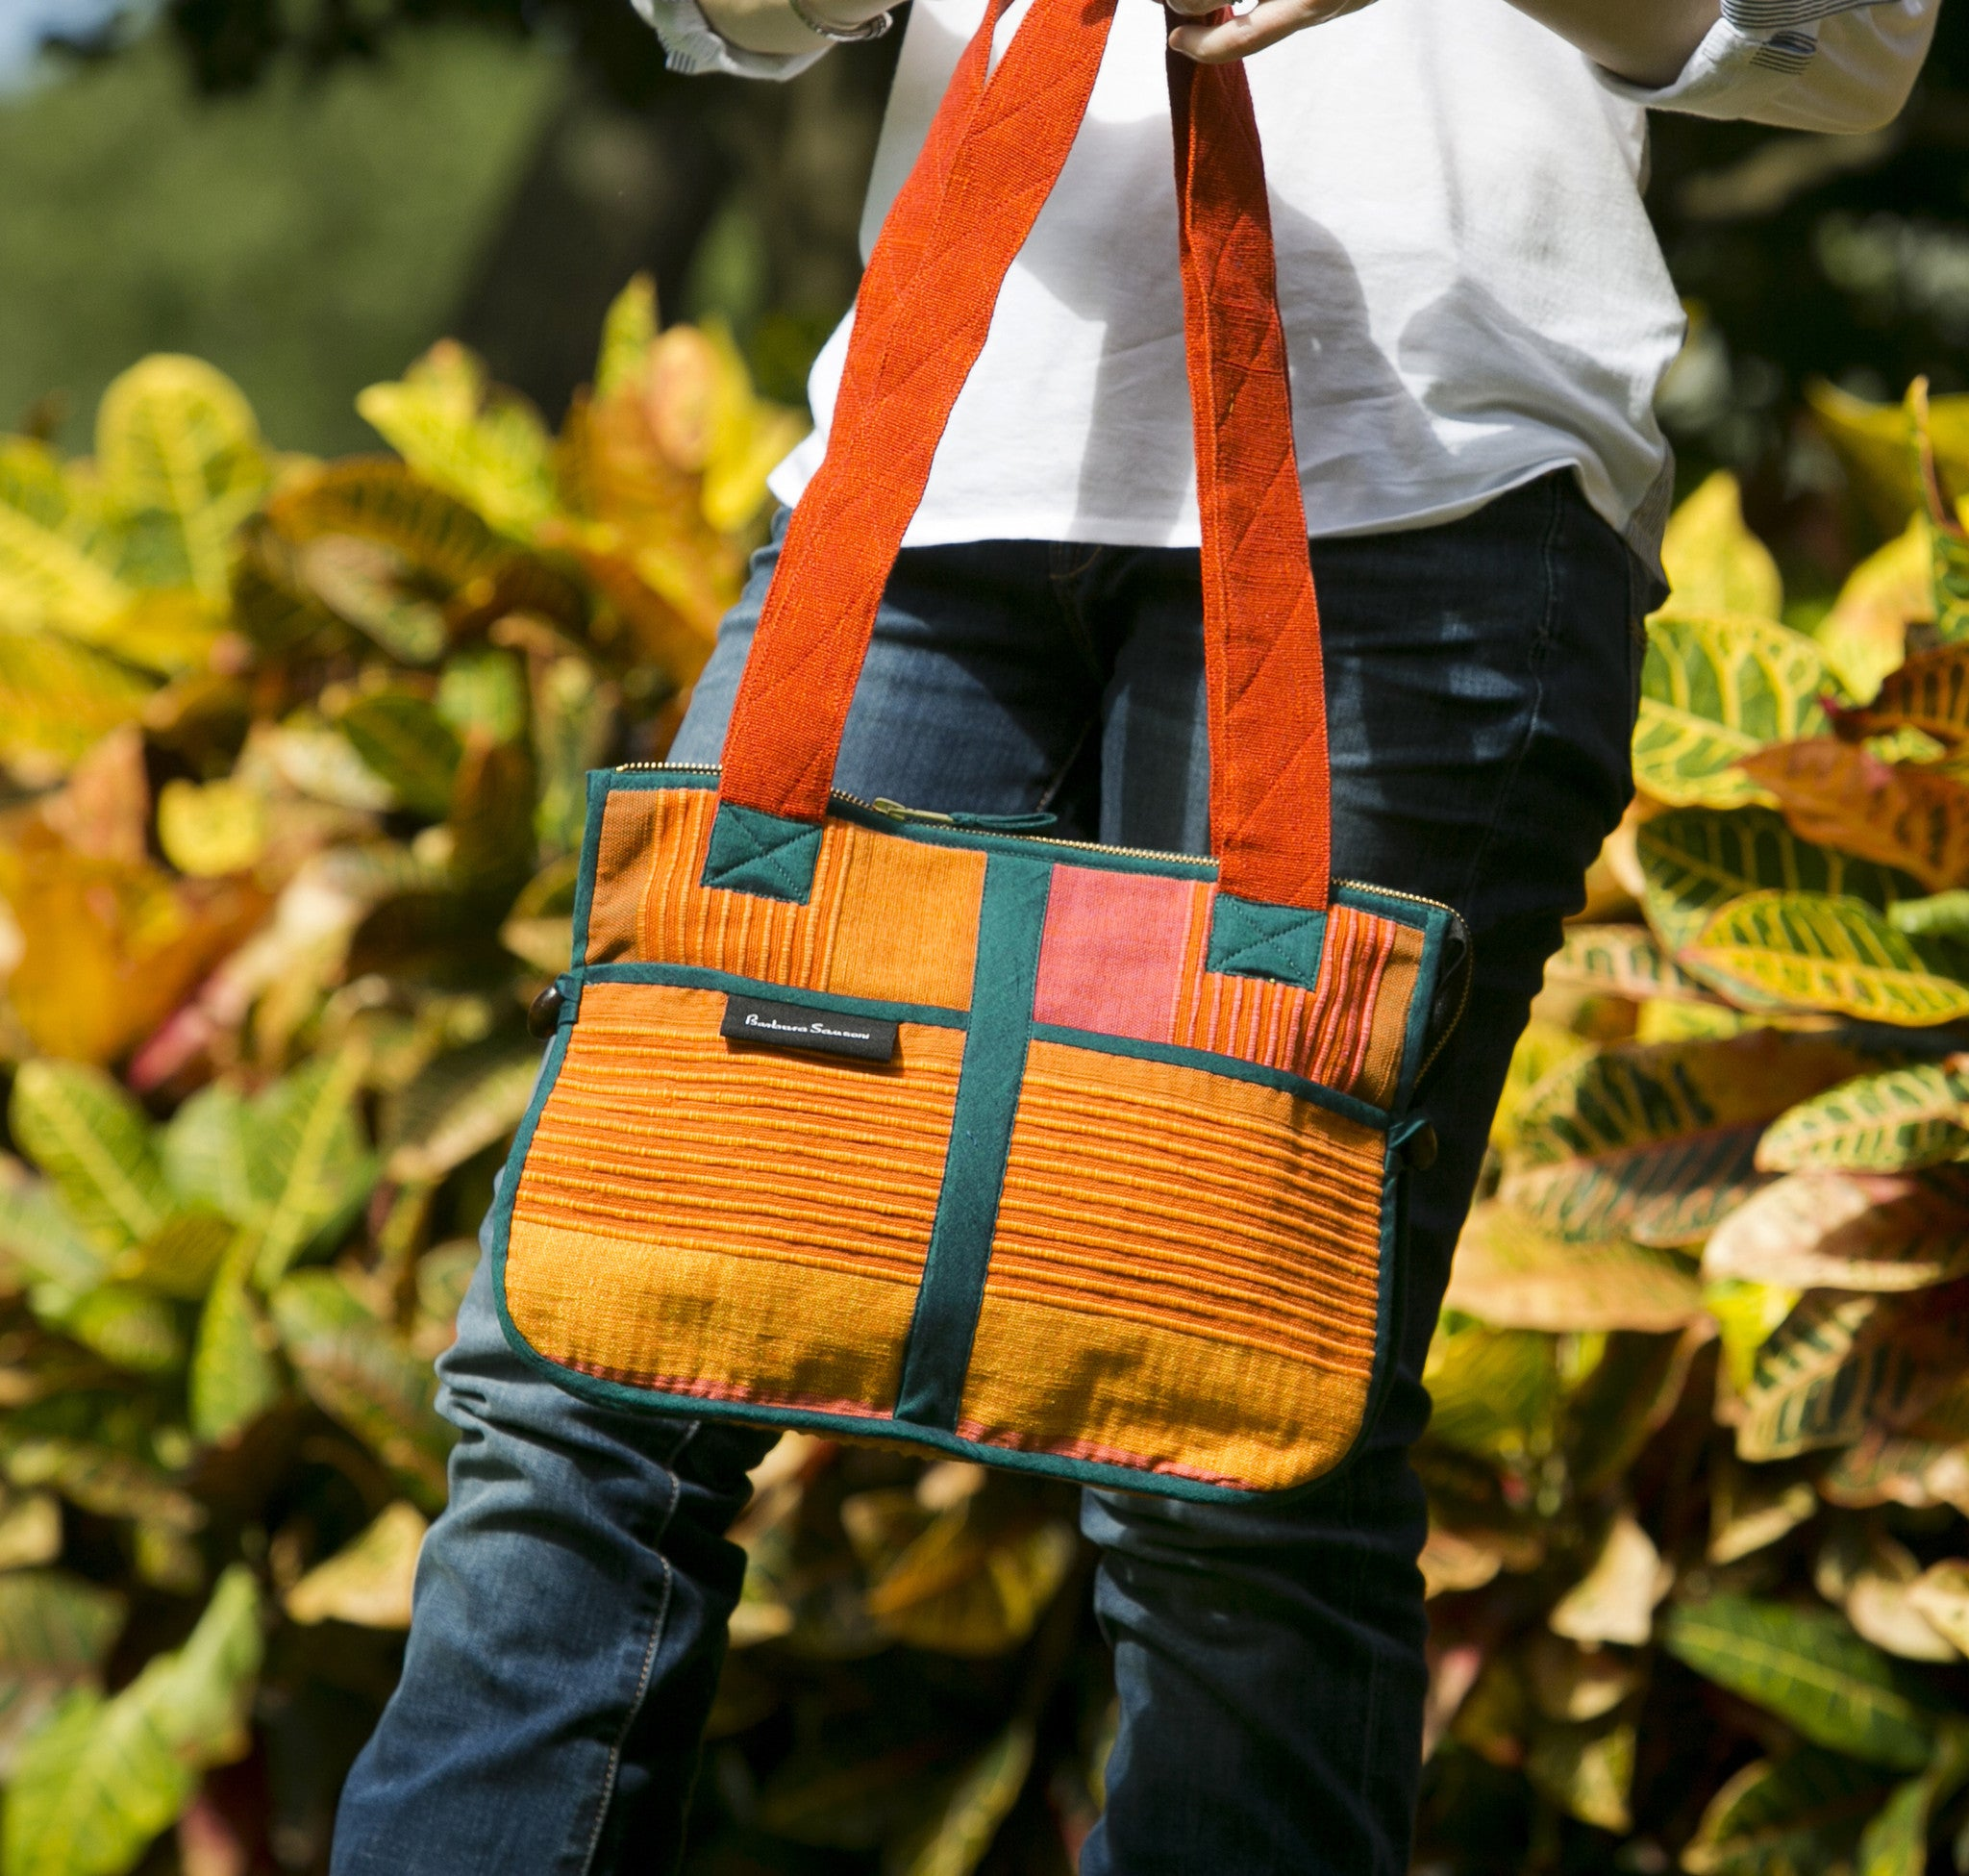 Barefoot Handwoven Expandable Shoulder Bag – spacious and stylish! (Sunset fabric shown)